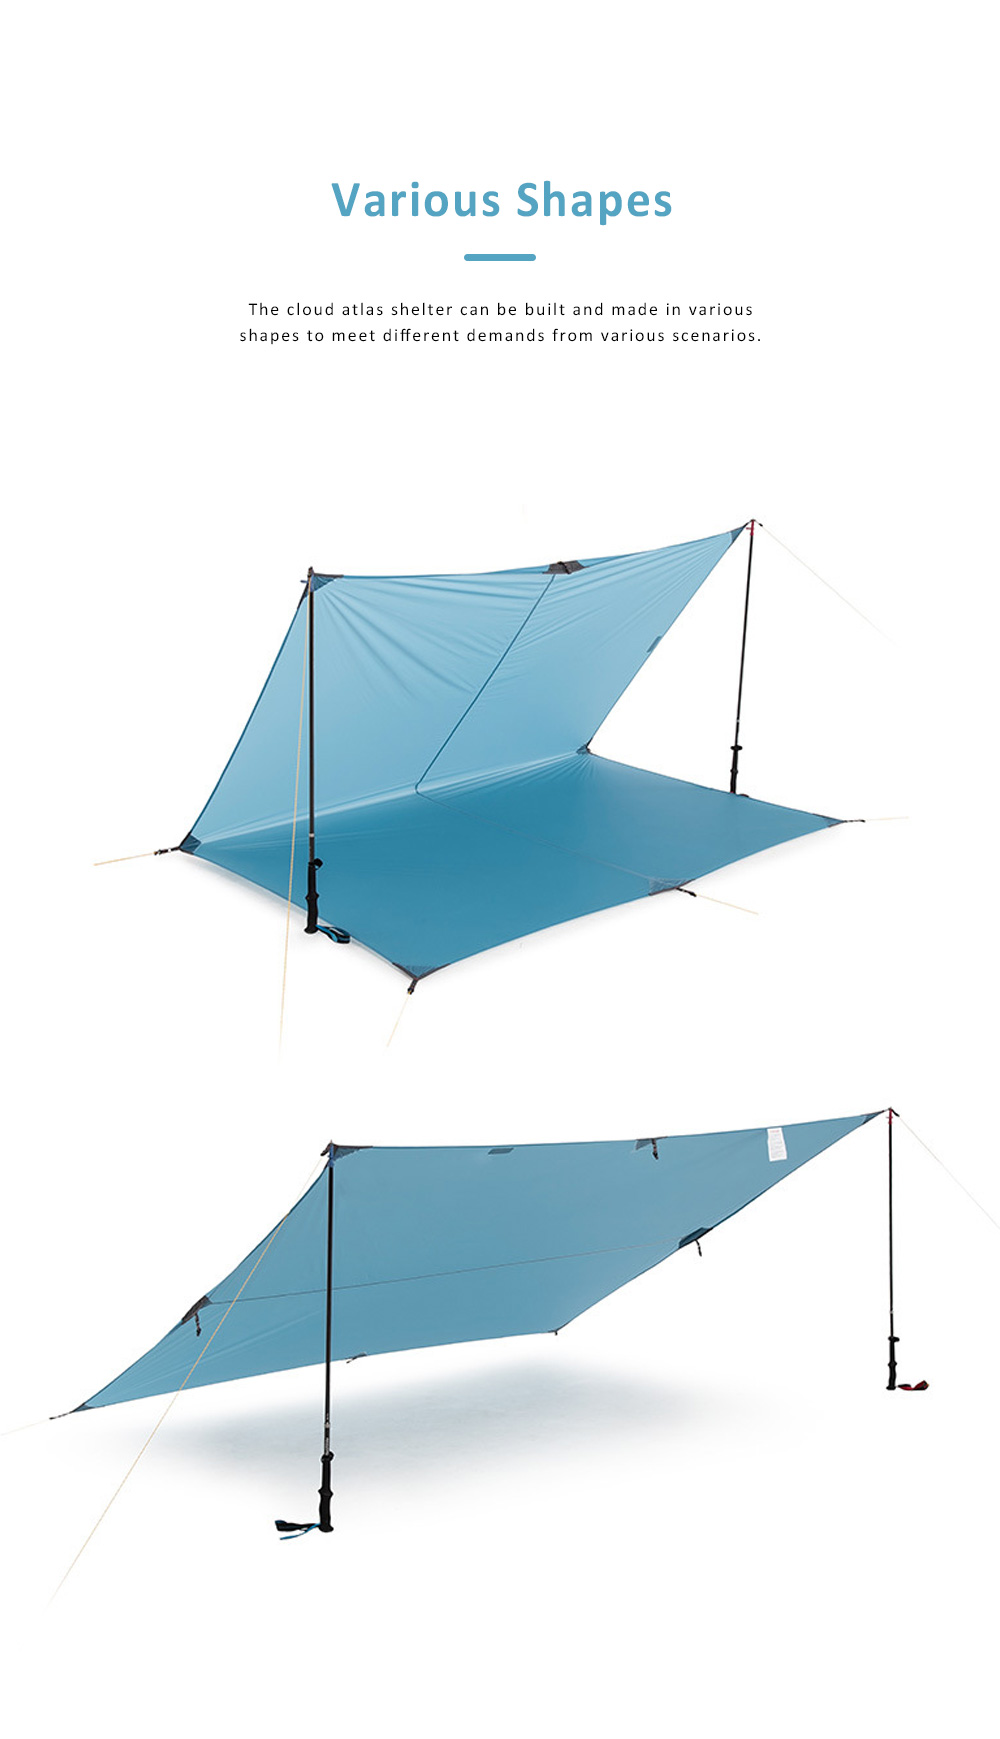 Sunshade Big Awning for Camping, Beach, Outdoor, Multifunctional Portable Large Canopy, Camping Cloud Atlas Shelter Outdoor Equipment 3